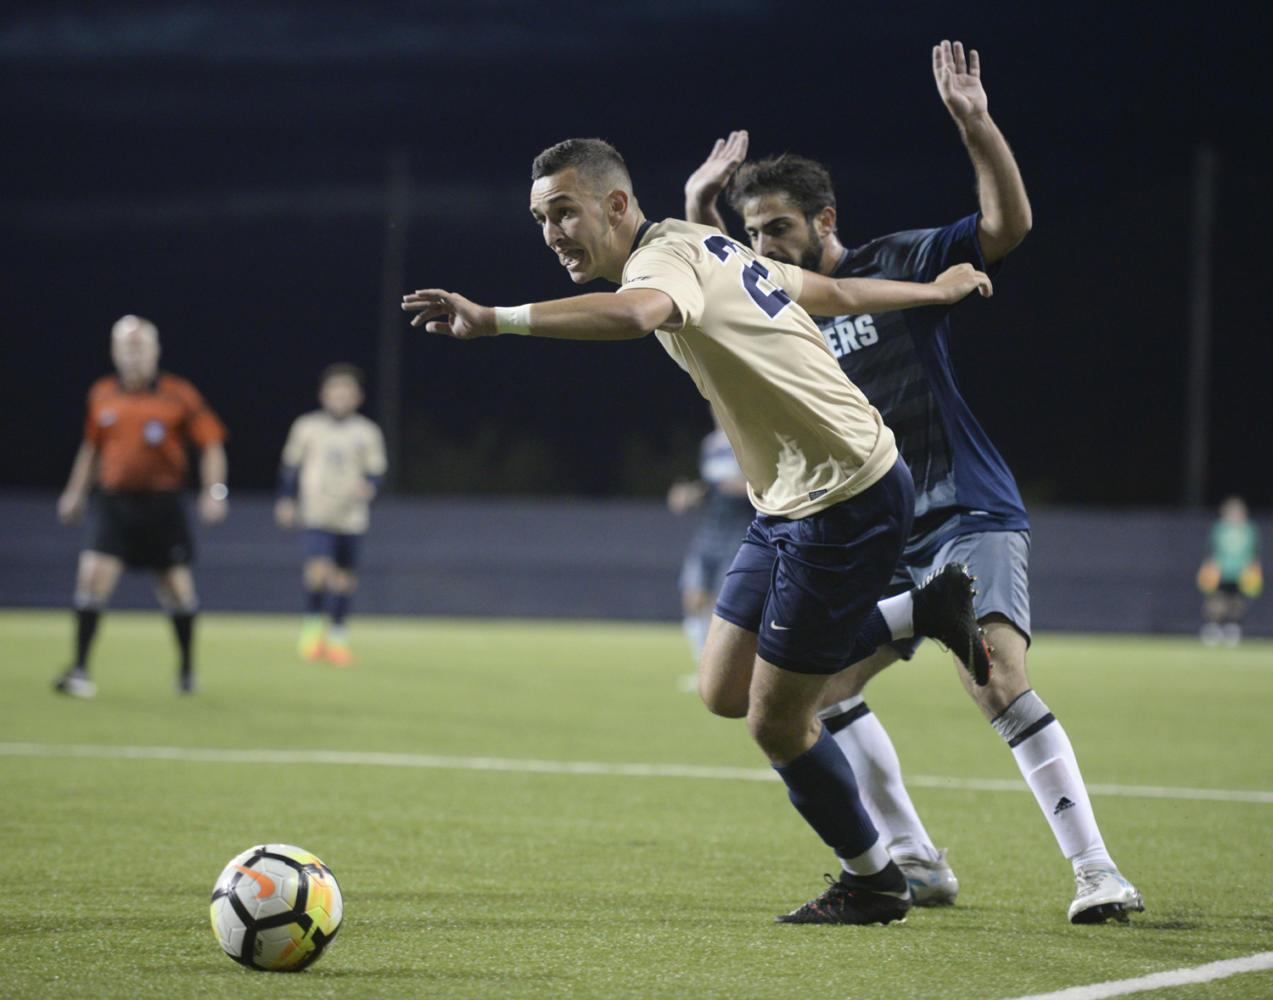 Senior defenseman Robby Dambrot fights for the ball in Pitt's 2-0 win over Longwood Friday night. (Photo by Thomas Yang | Staff Photographer)